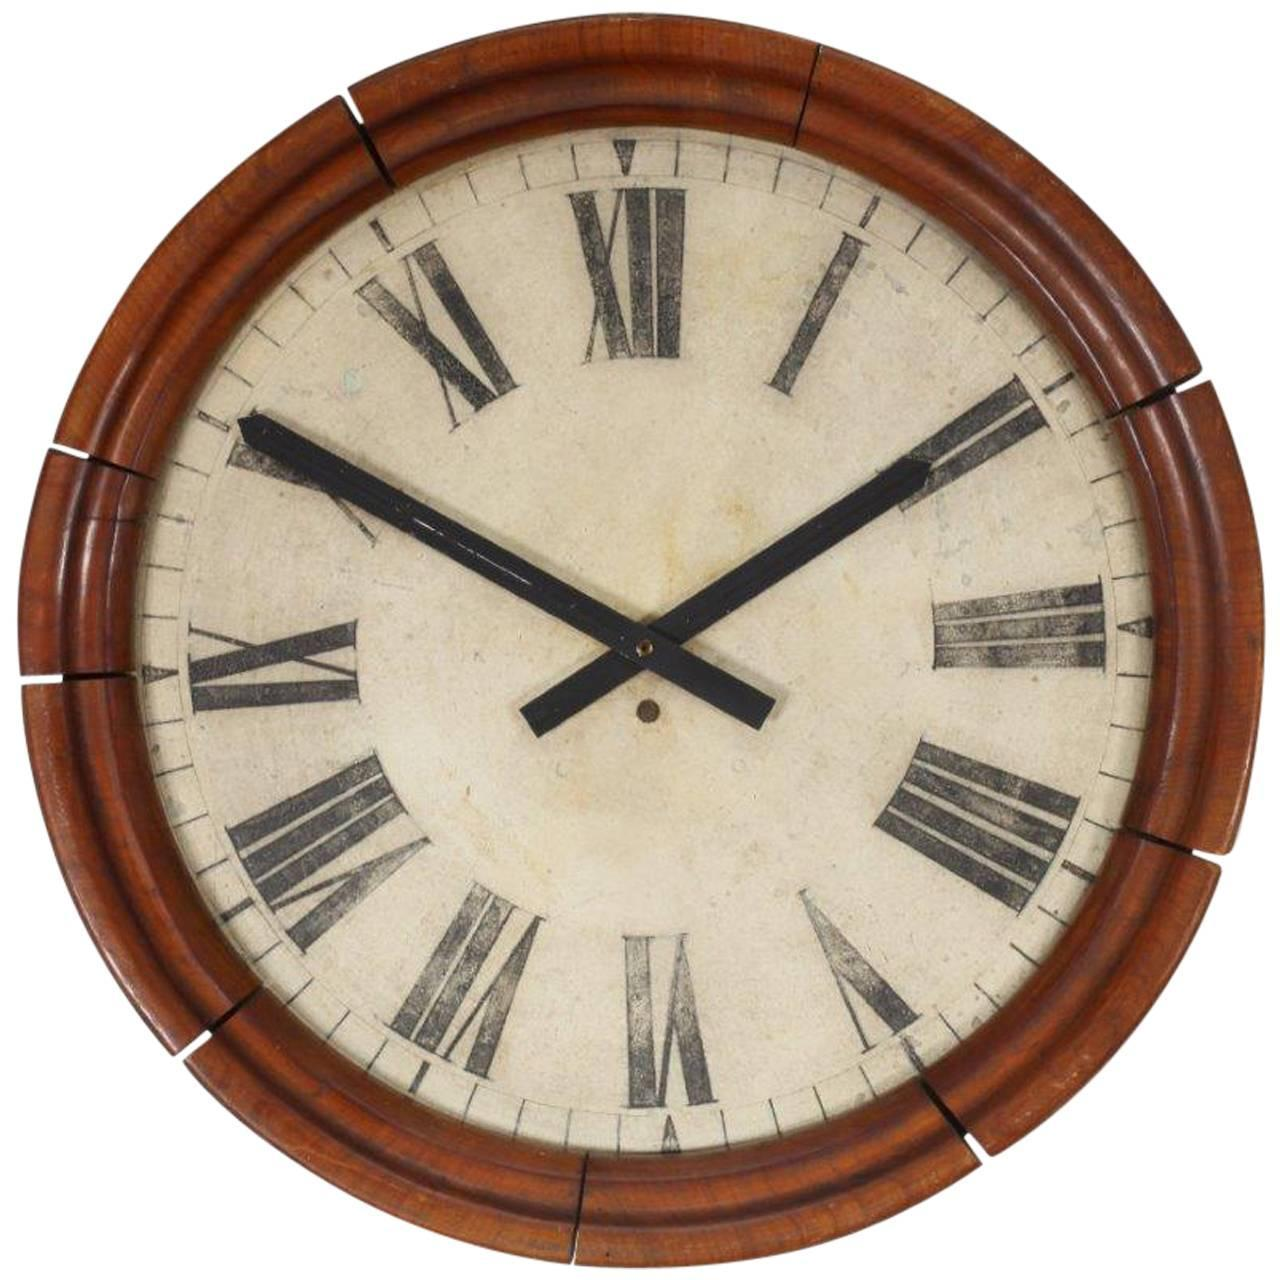 Charming Train Station Clock Case Vienna 1920 For Sale